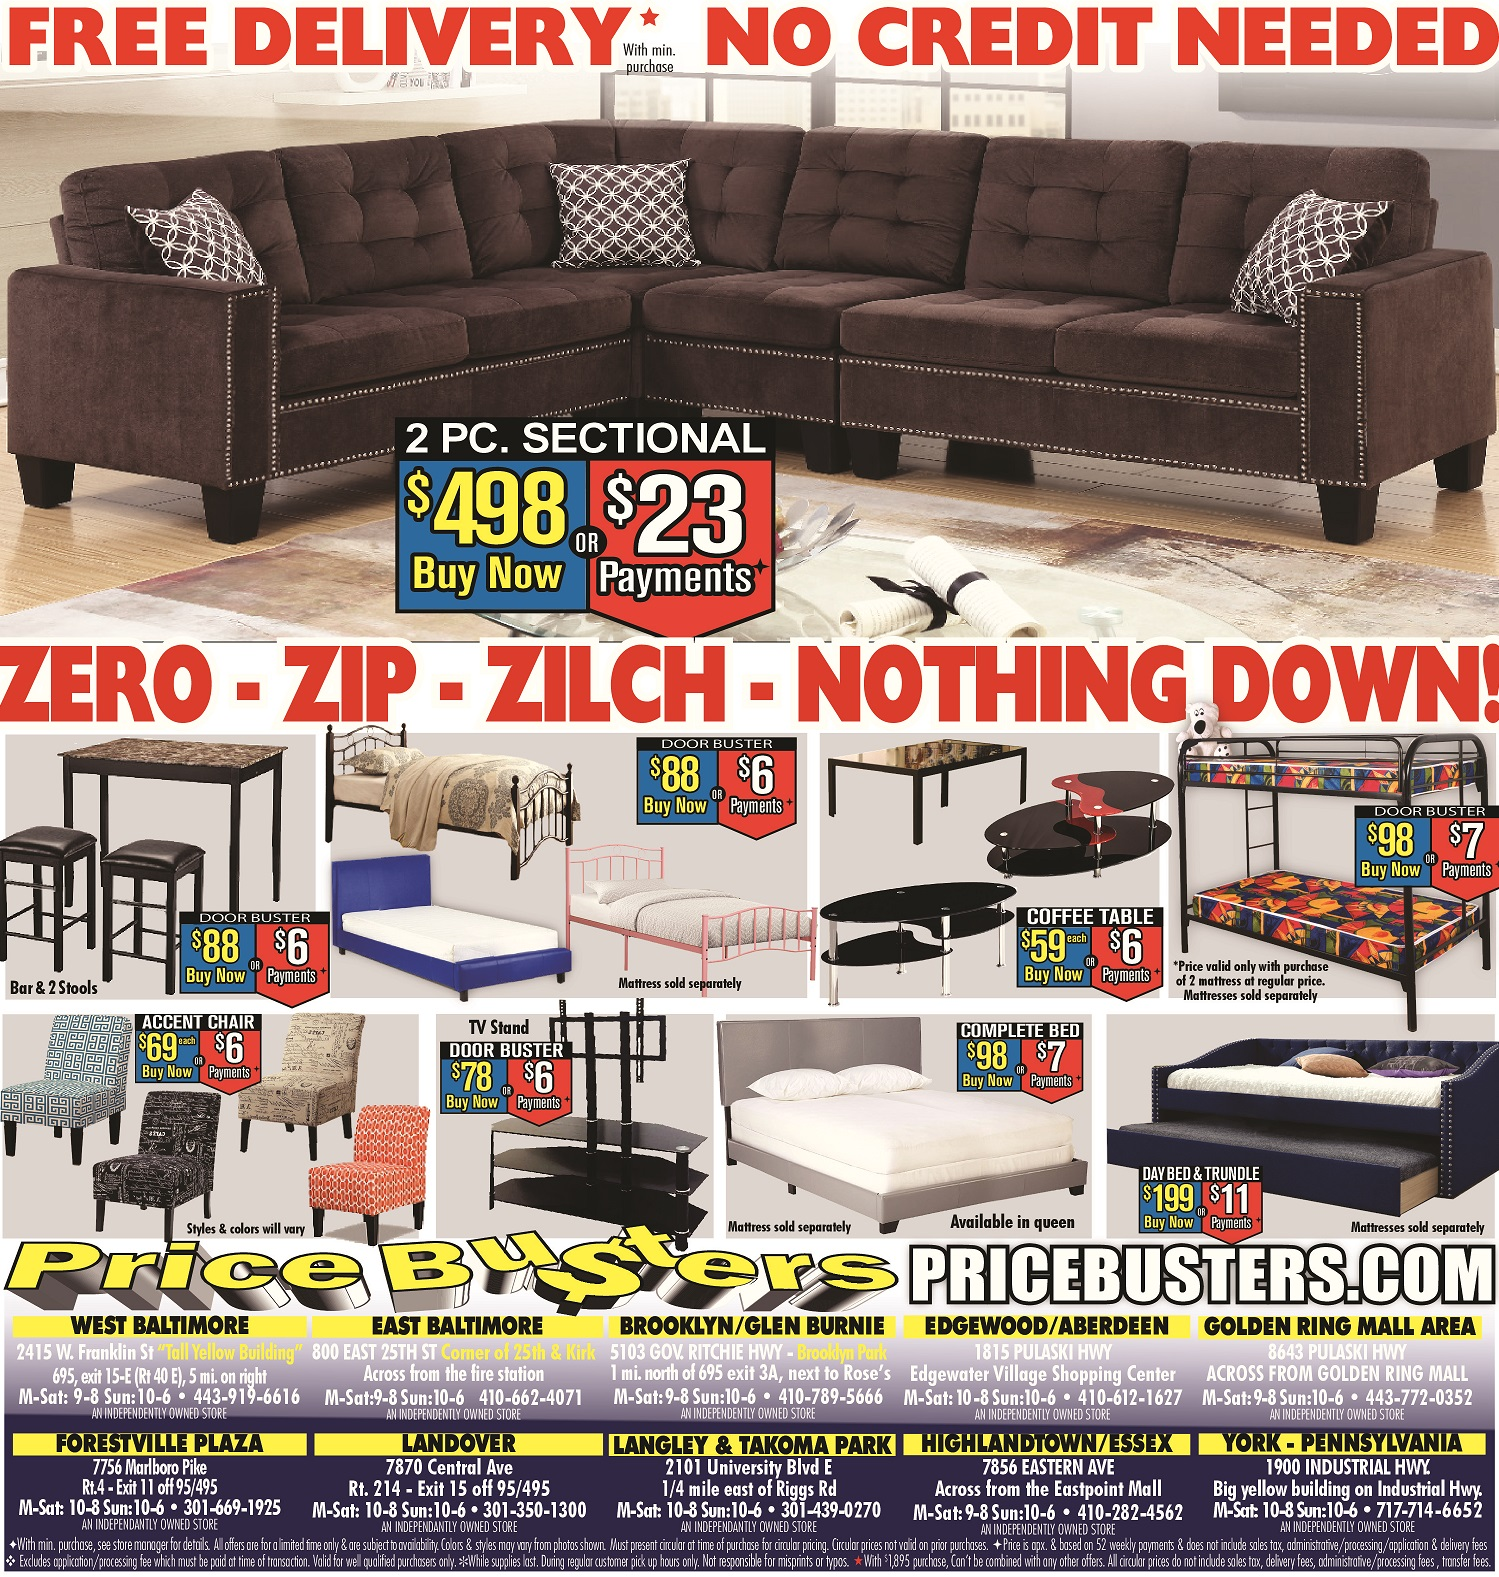 Price Busters Discount Furniture, Forestville Maryland (MD